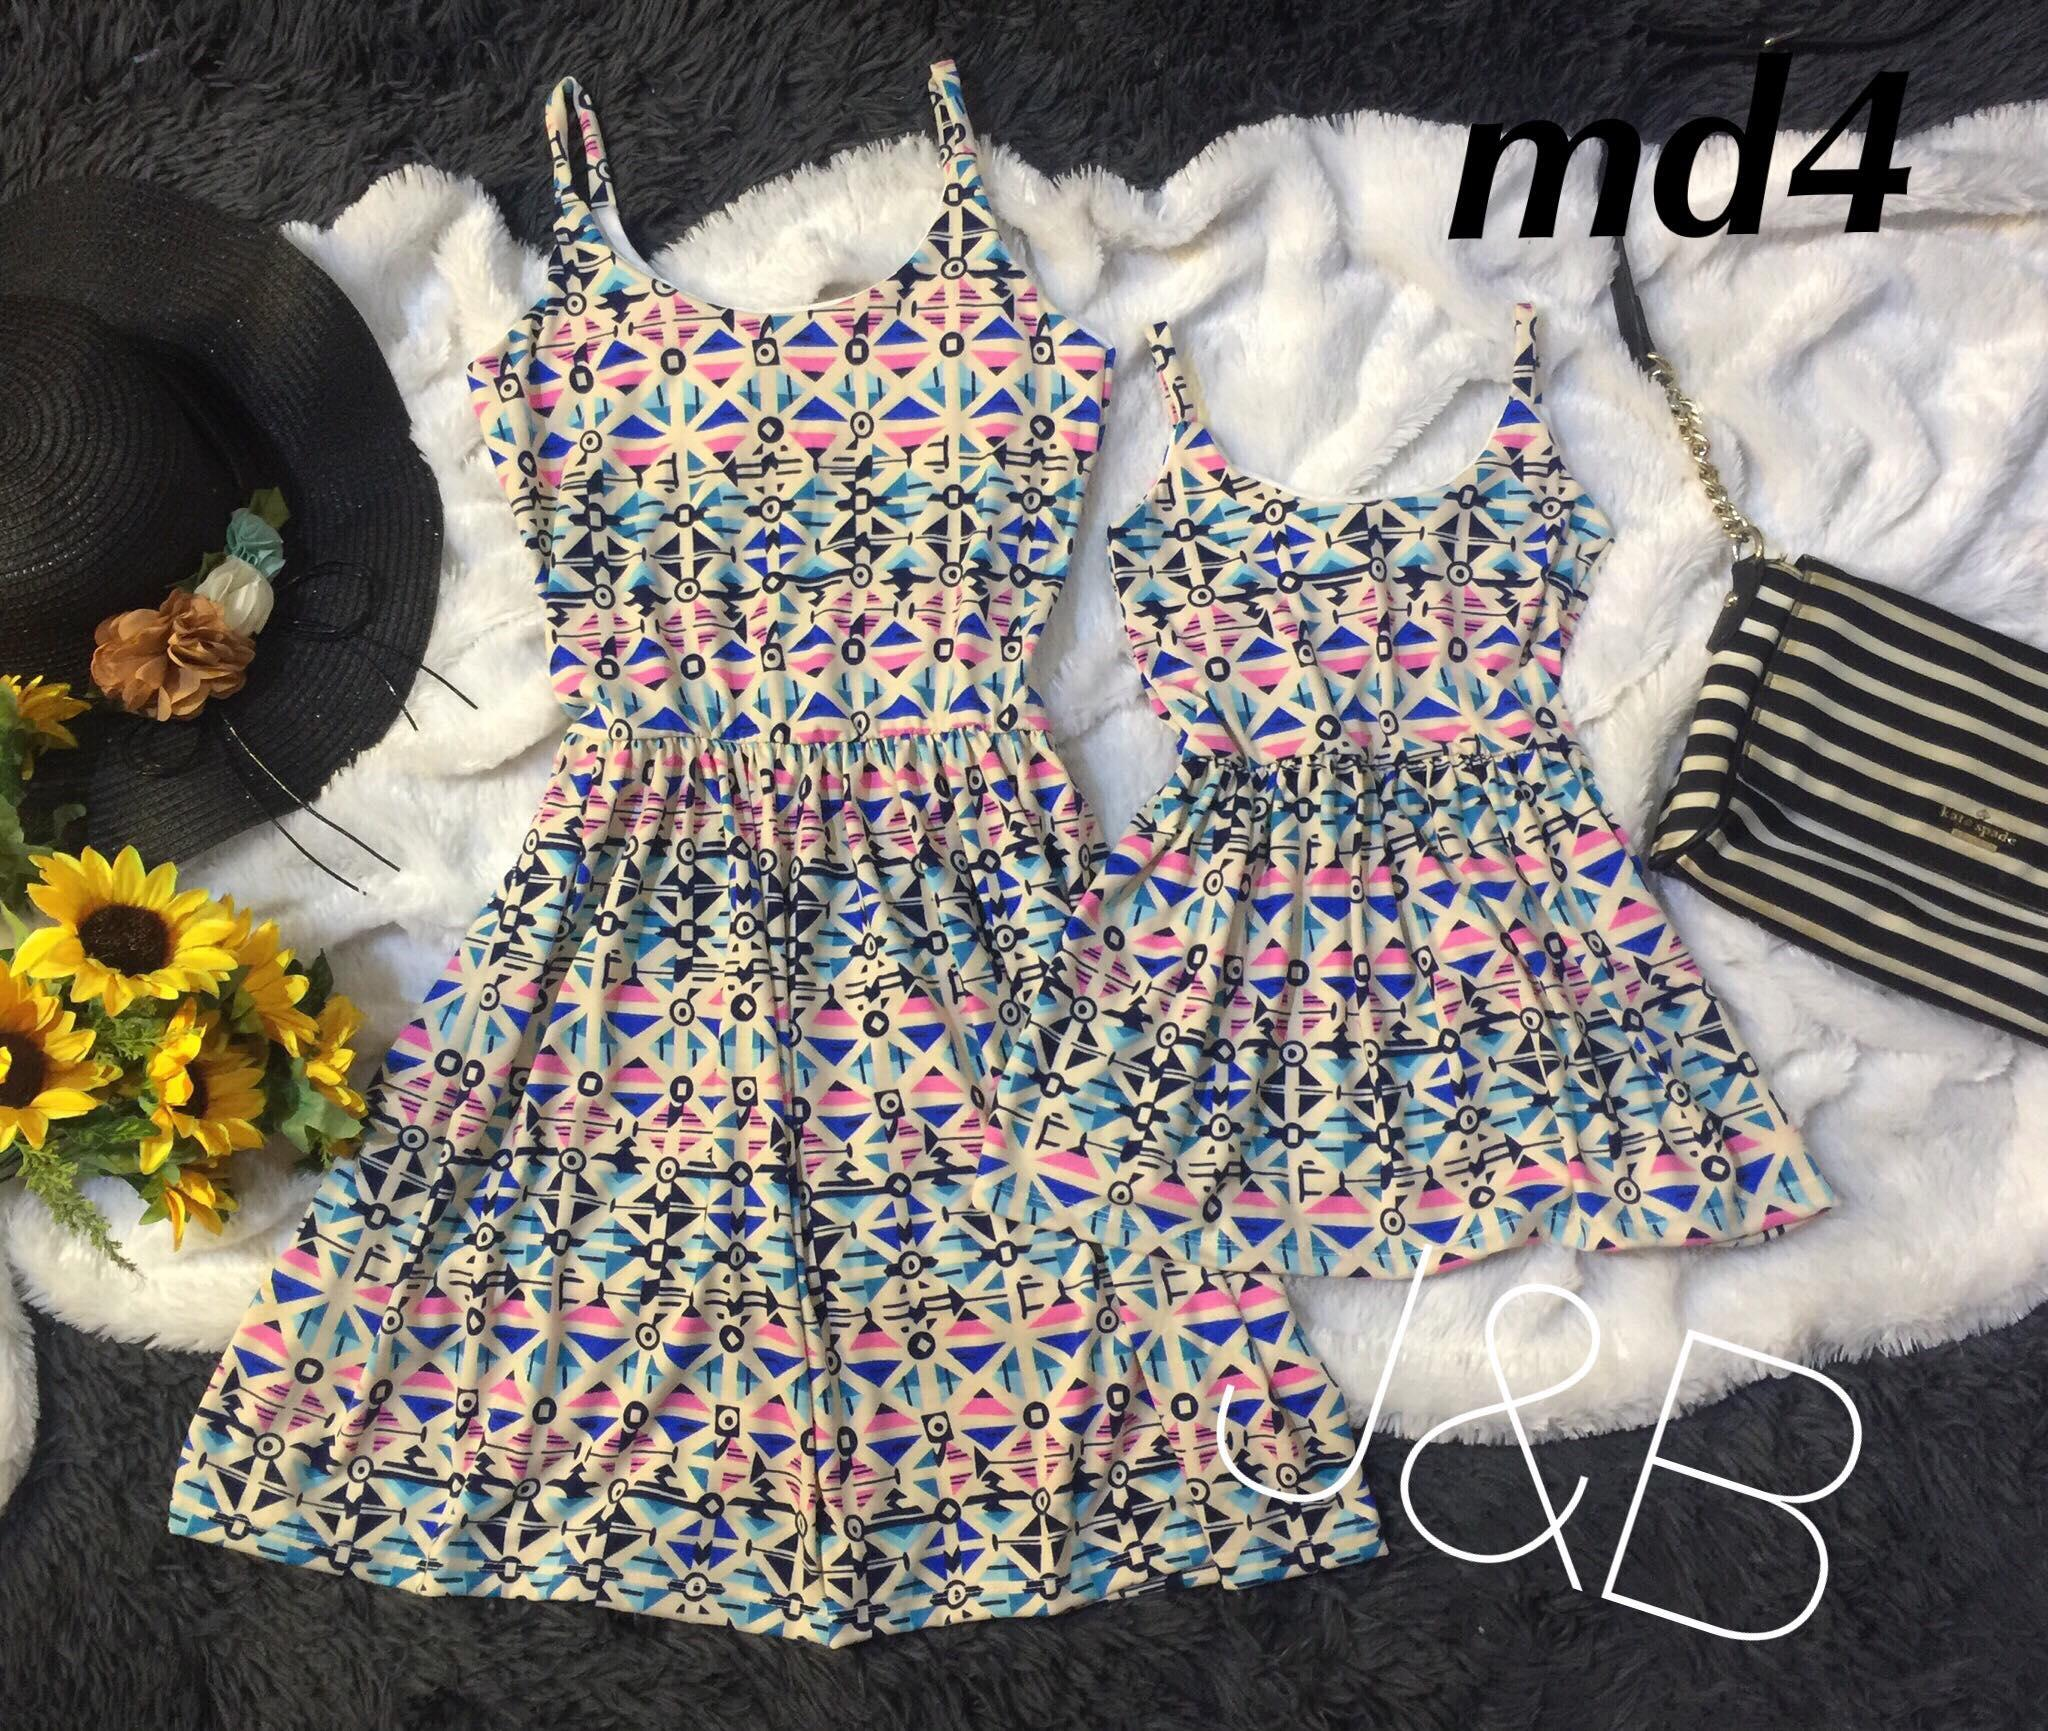 92113325a Girls Clothing and Accessories for sale - Baby Clothing Accessories ...